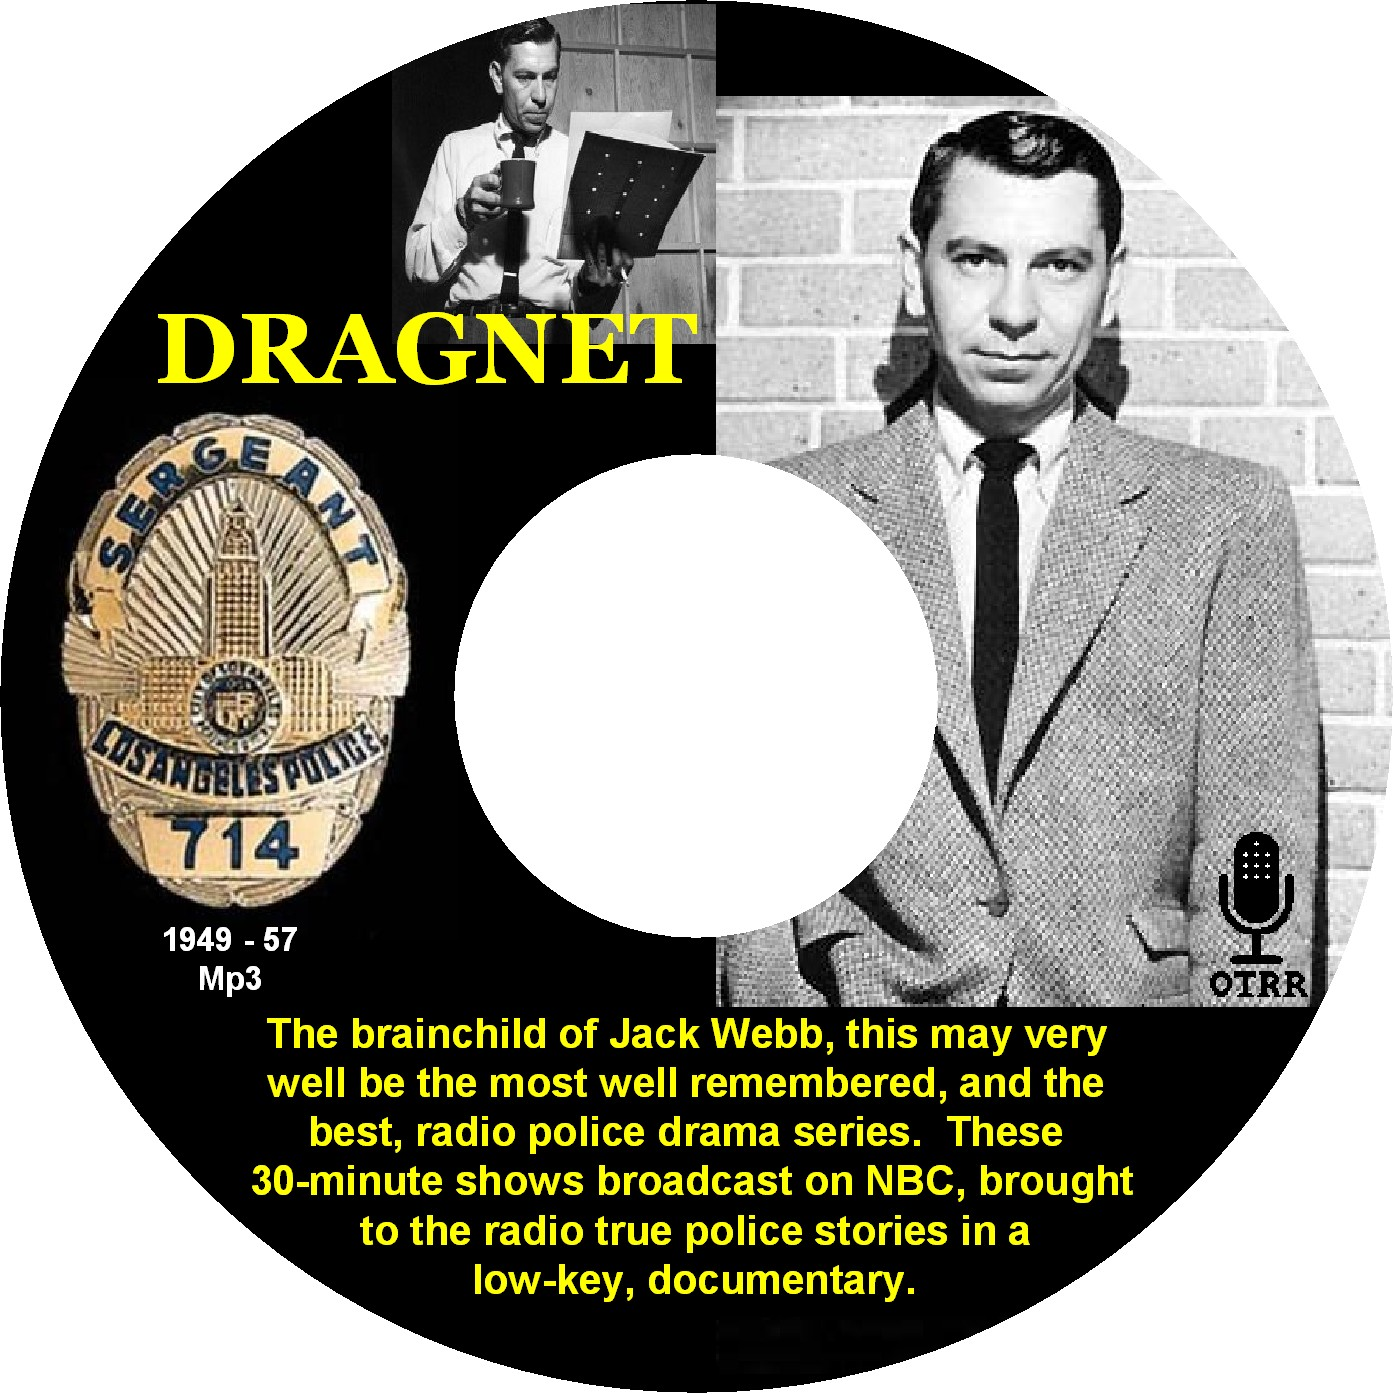 Dragnet - Single Episodes : Old Time Radio Researchers Group : Free